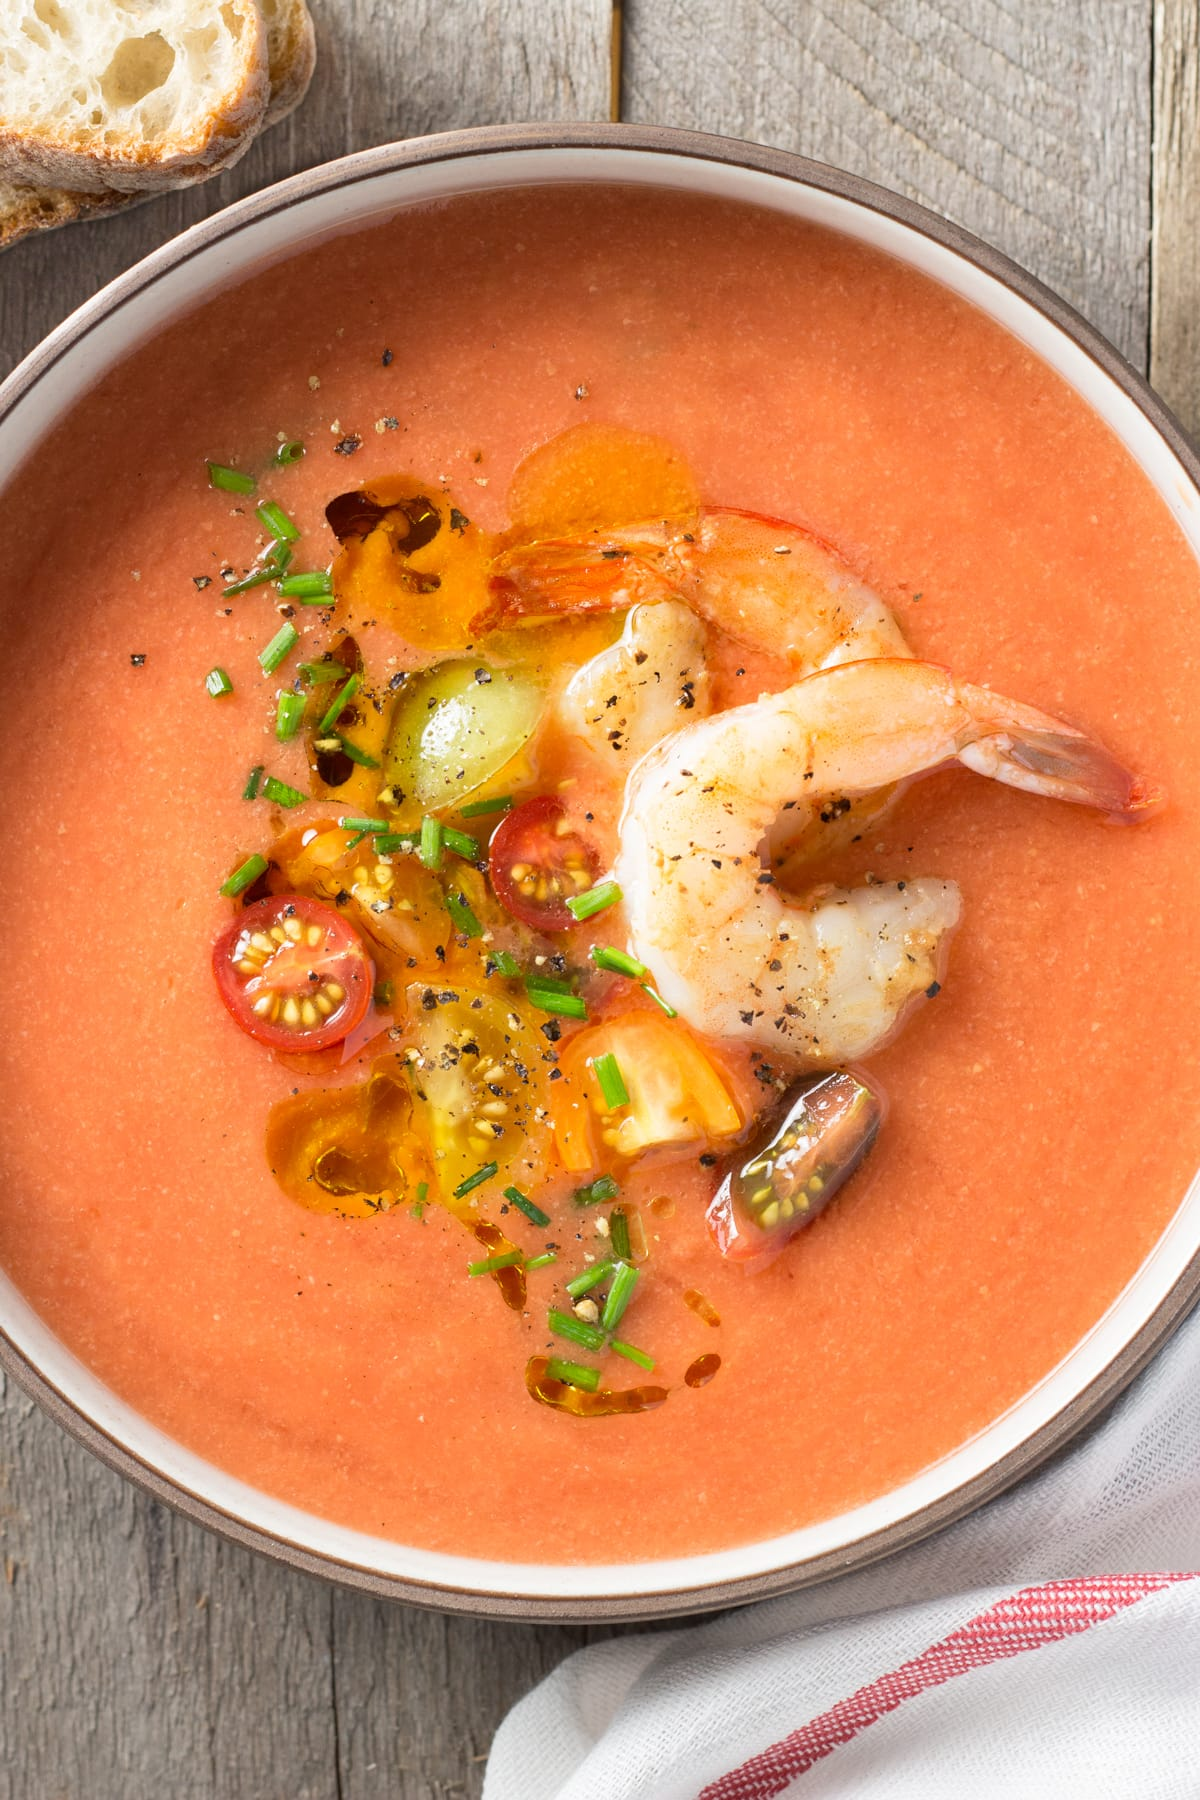 Overhead view of a bowl of tomato gazpacho topped with shrimp, sliced tomatoes and chives on a wood surface.